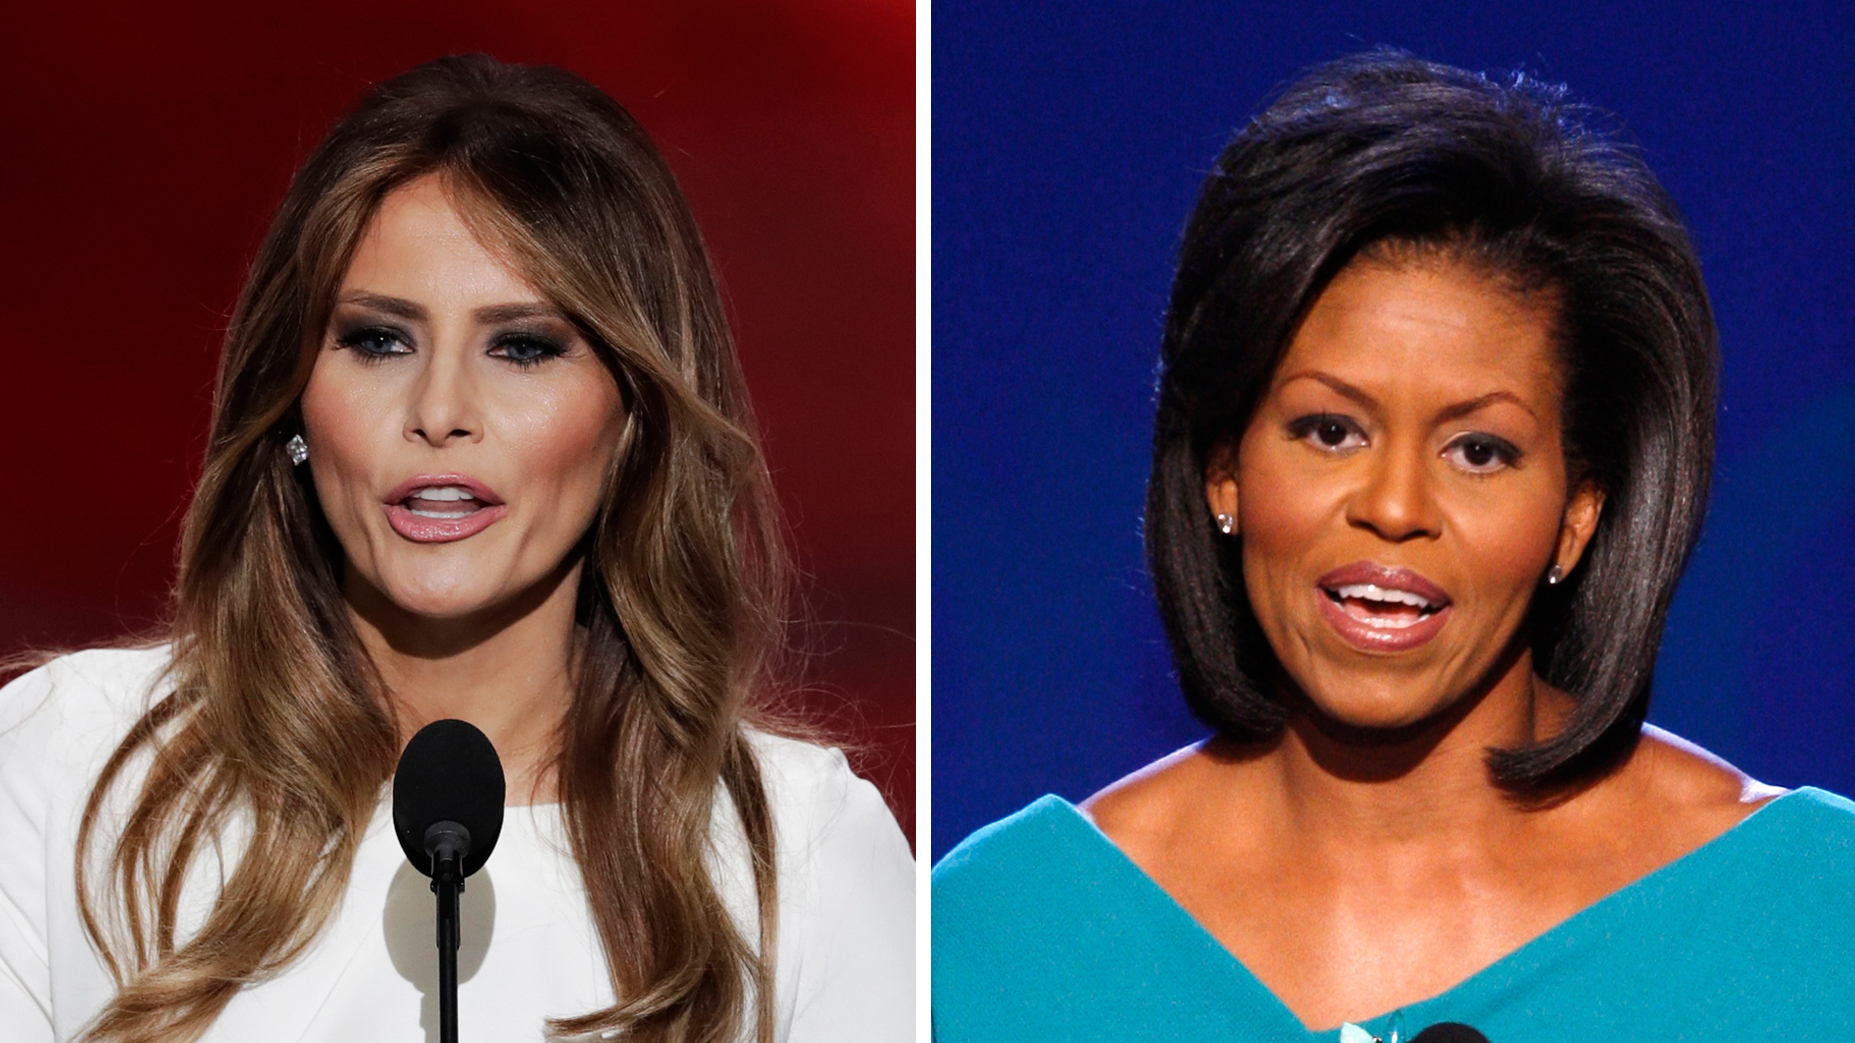 Melania Trump speaks to the Republican National Convention on Monday night. Two passages from her speech closely mirrored Michelle Obama's 2008 Democratic convention speech. (Photos by The Associated Press)